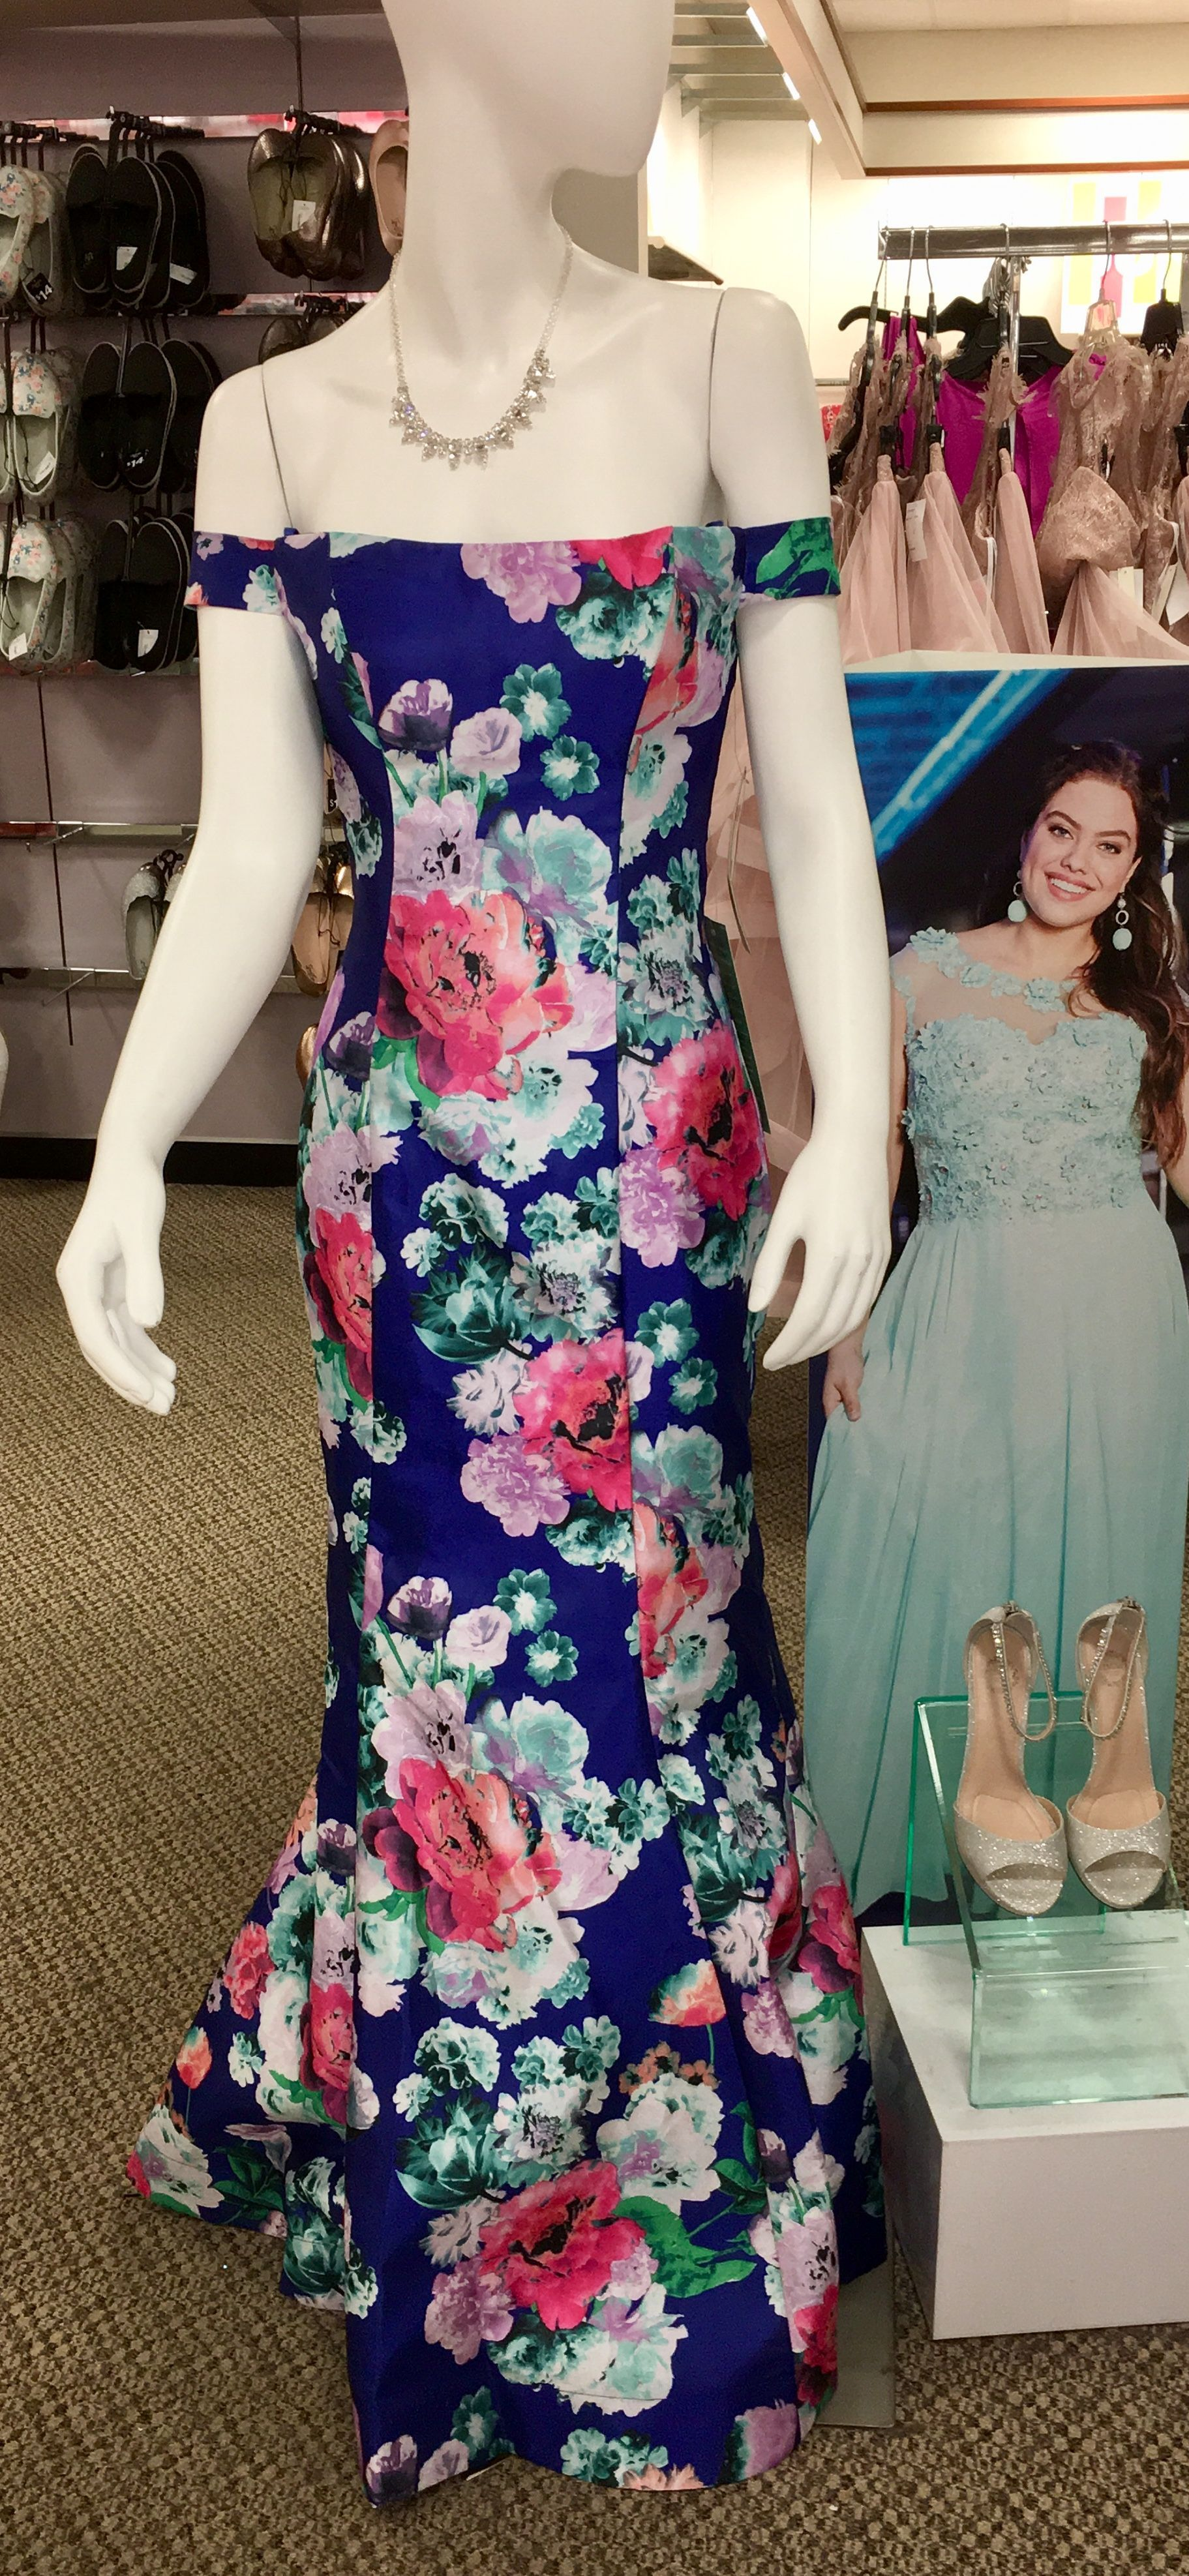 Saw This Prom Dress At Jcpenney And Thought It Would Make A Gorgeous Bridesmaid Stunning Wedding Dresses Wedding Bridesmaids Dresses Blue Fresh Bridal Bouquets [ 3950 x 1823 Pixel ]